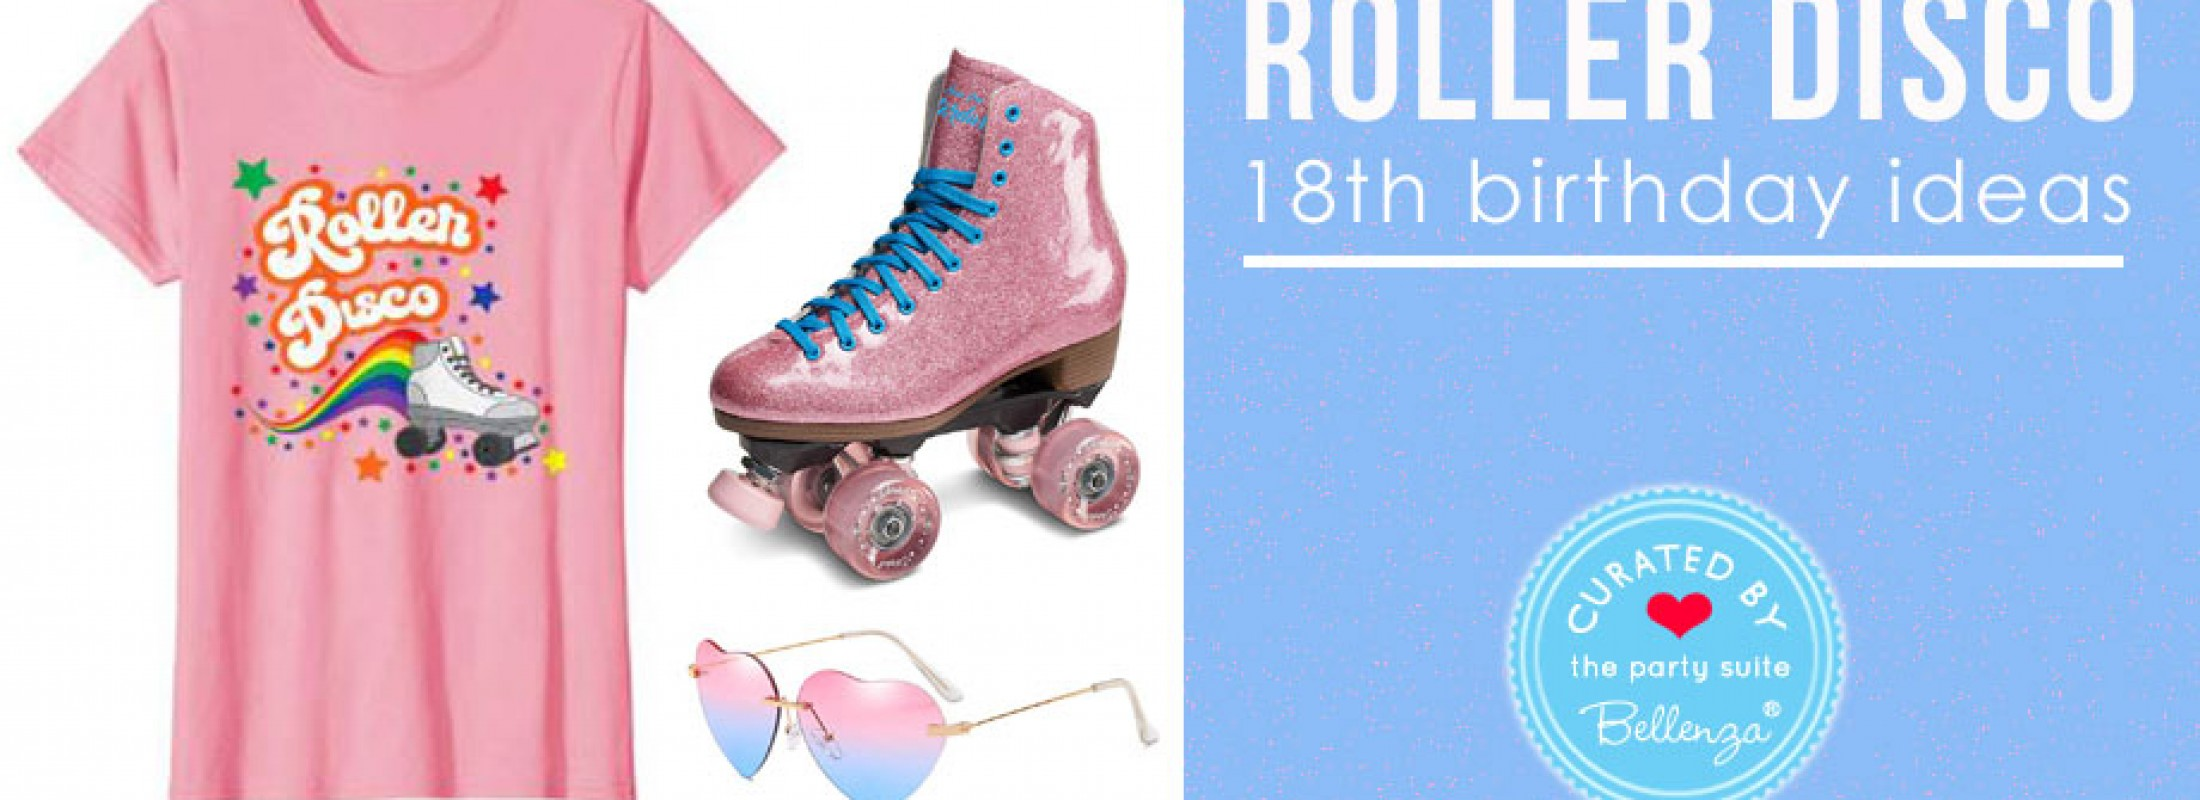 Disco Roller Skating 18th Birthday Party!